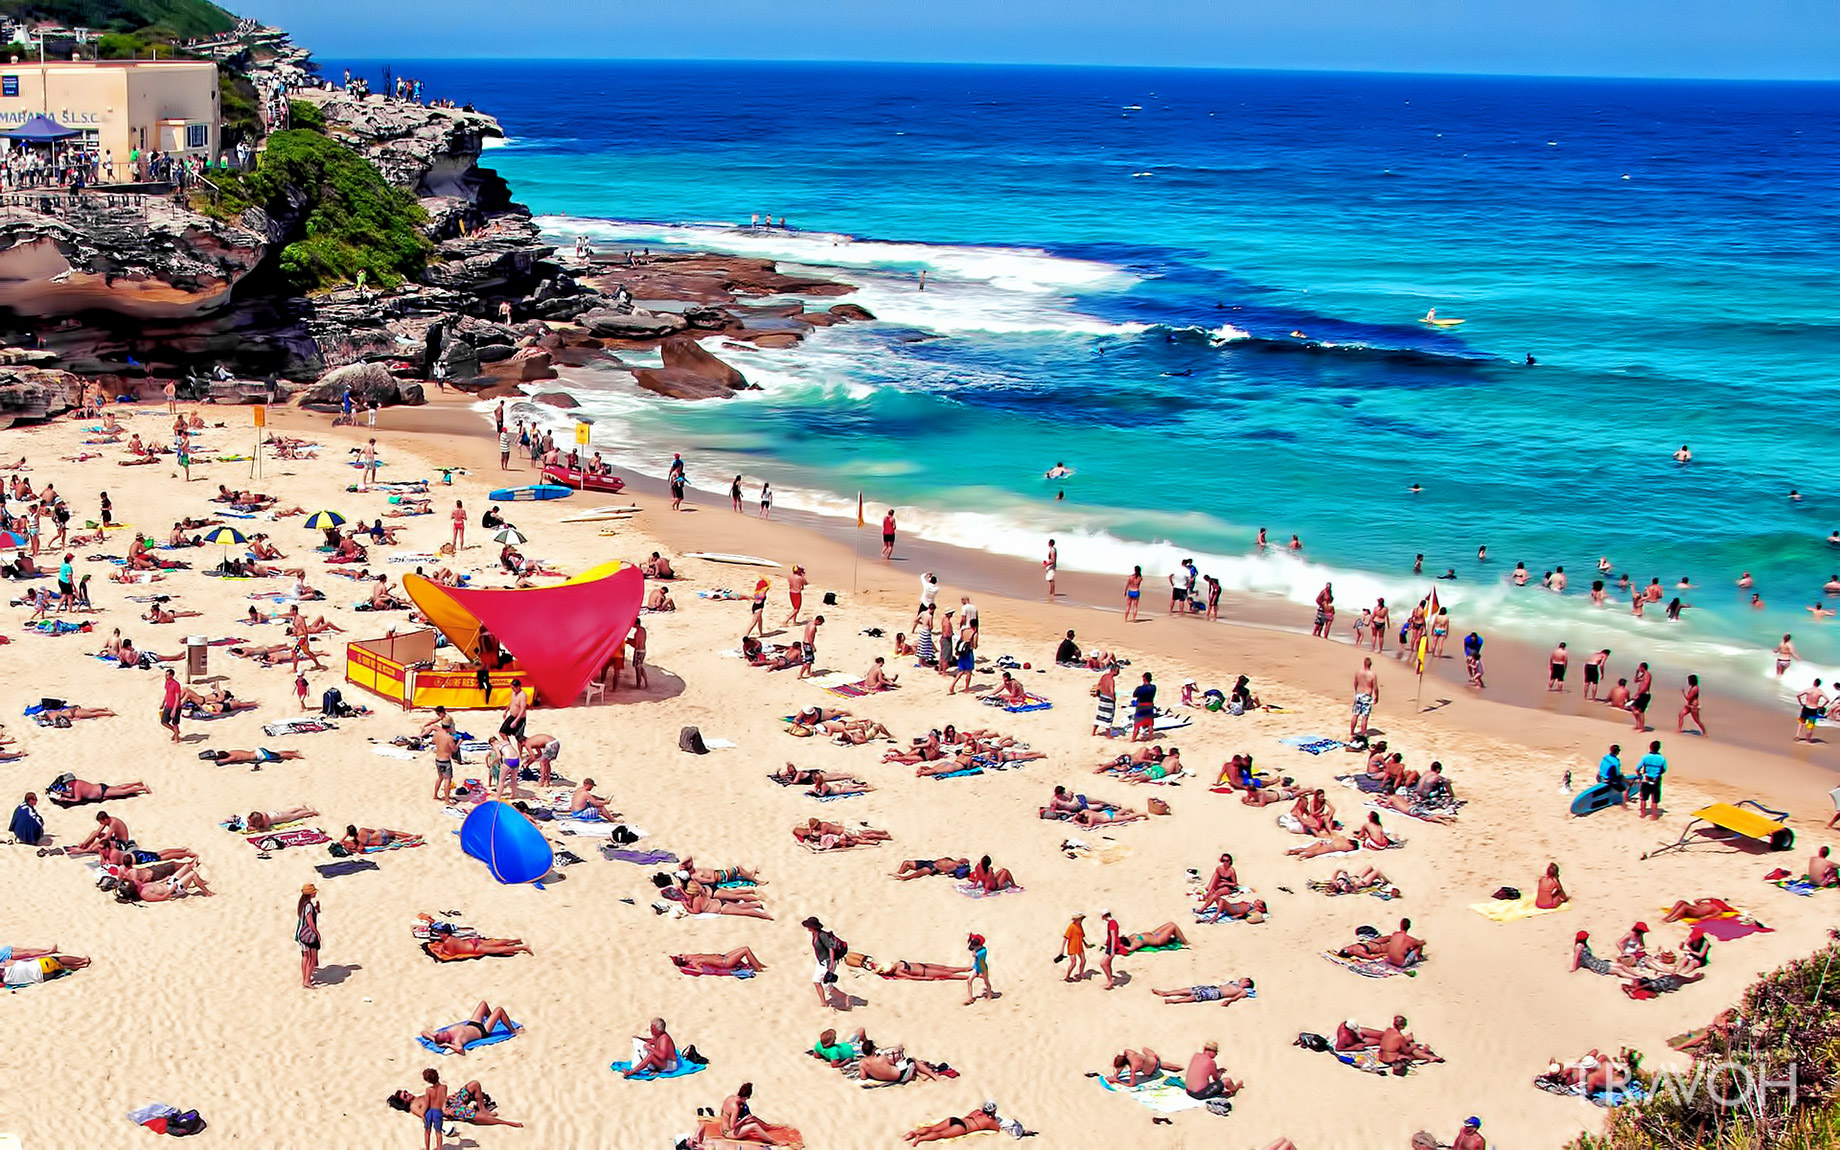 Tamarama Beach - Exploring 10 of the Top Beaches in Sydney, Australia